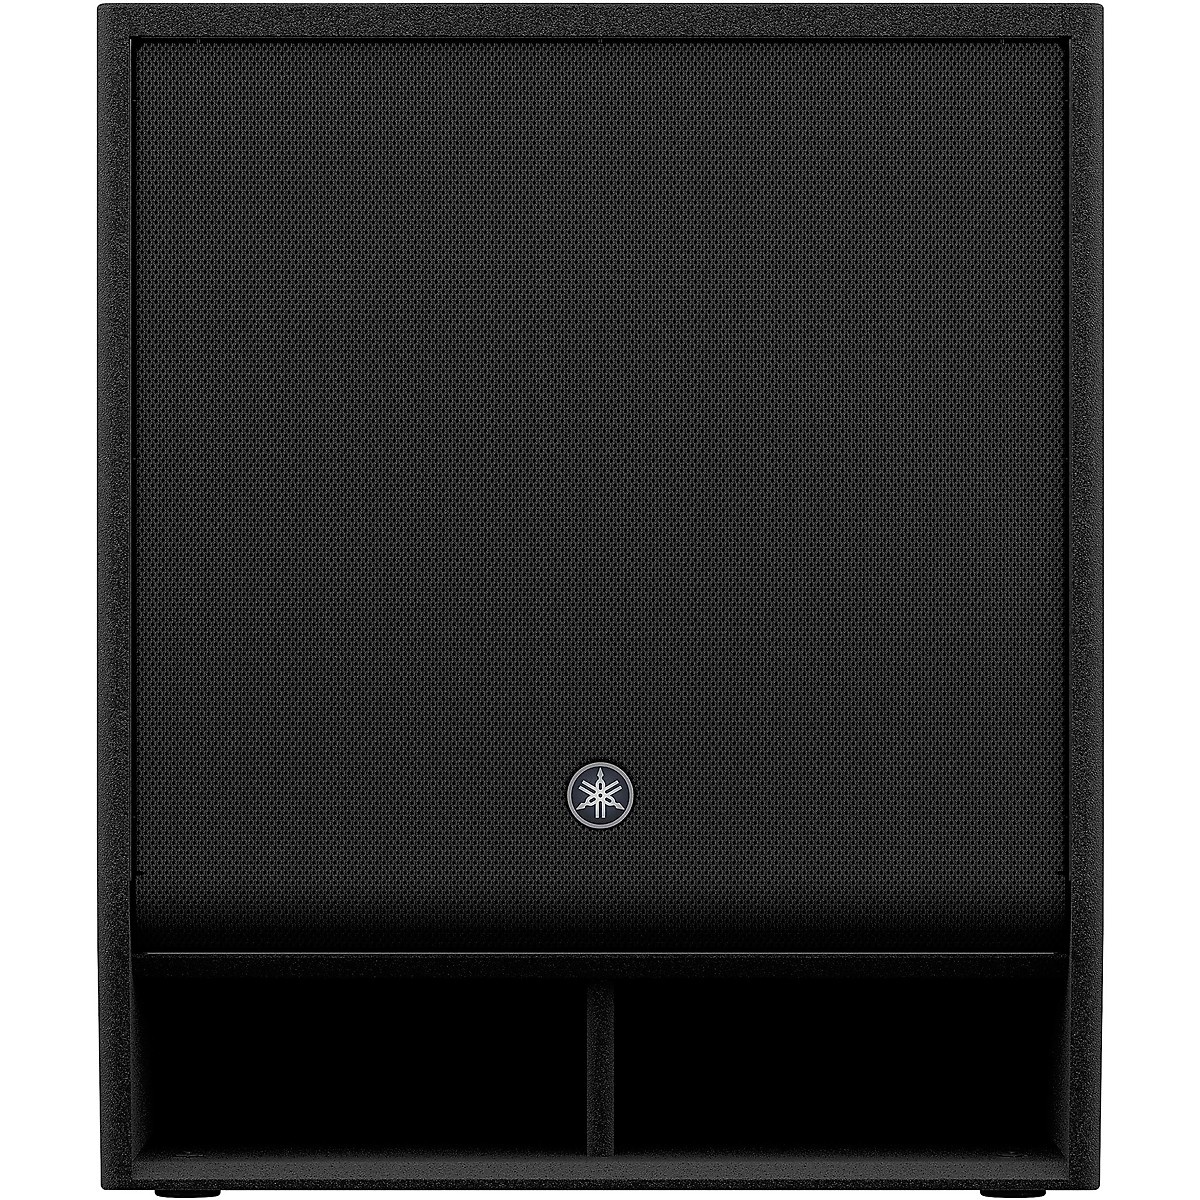 Yamaha DXS18XLF-D 1600W Powered Subwoofer with Dante